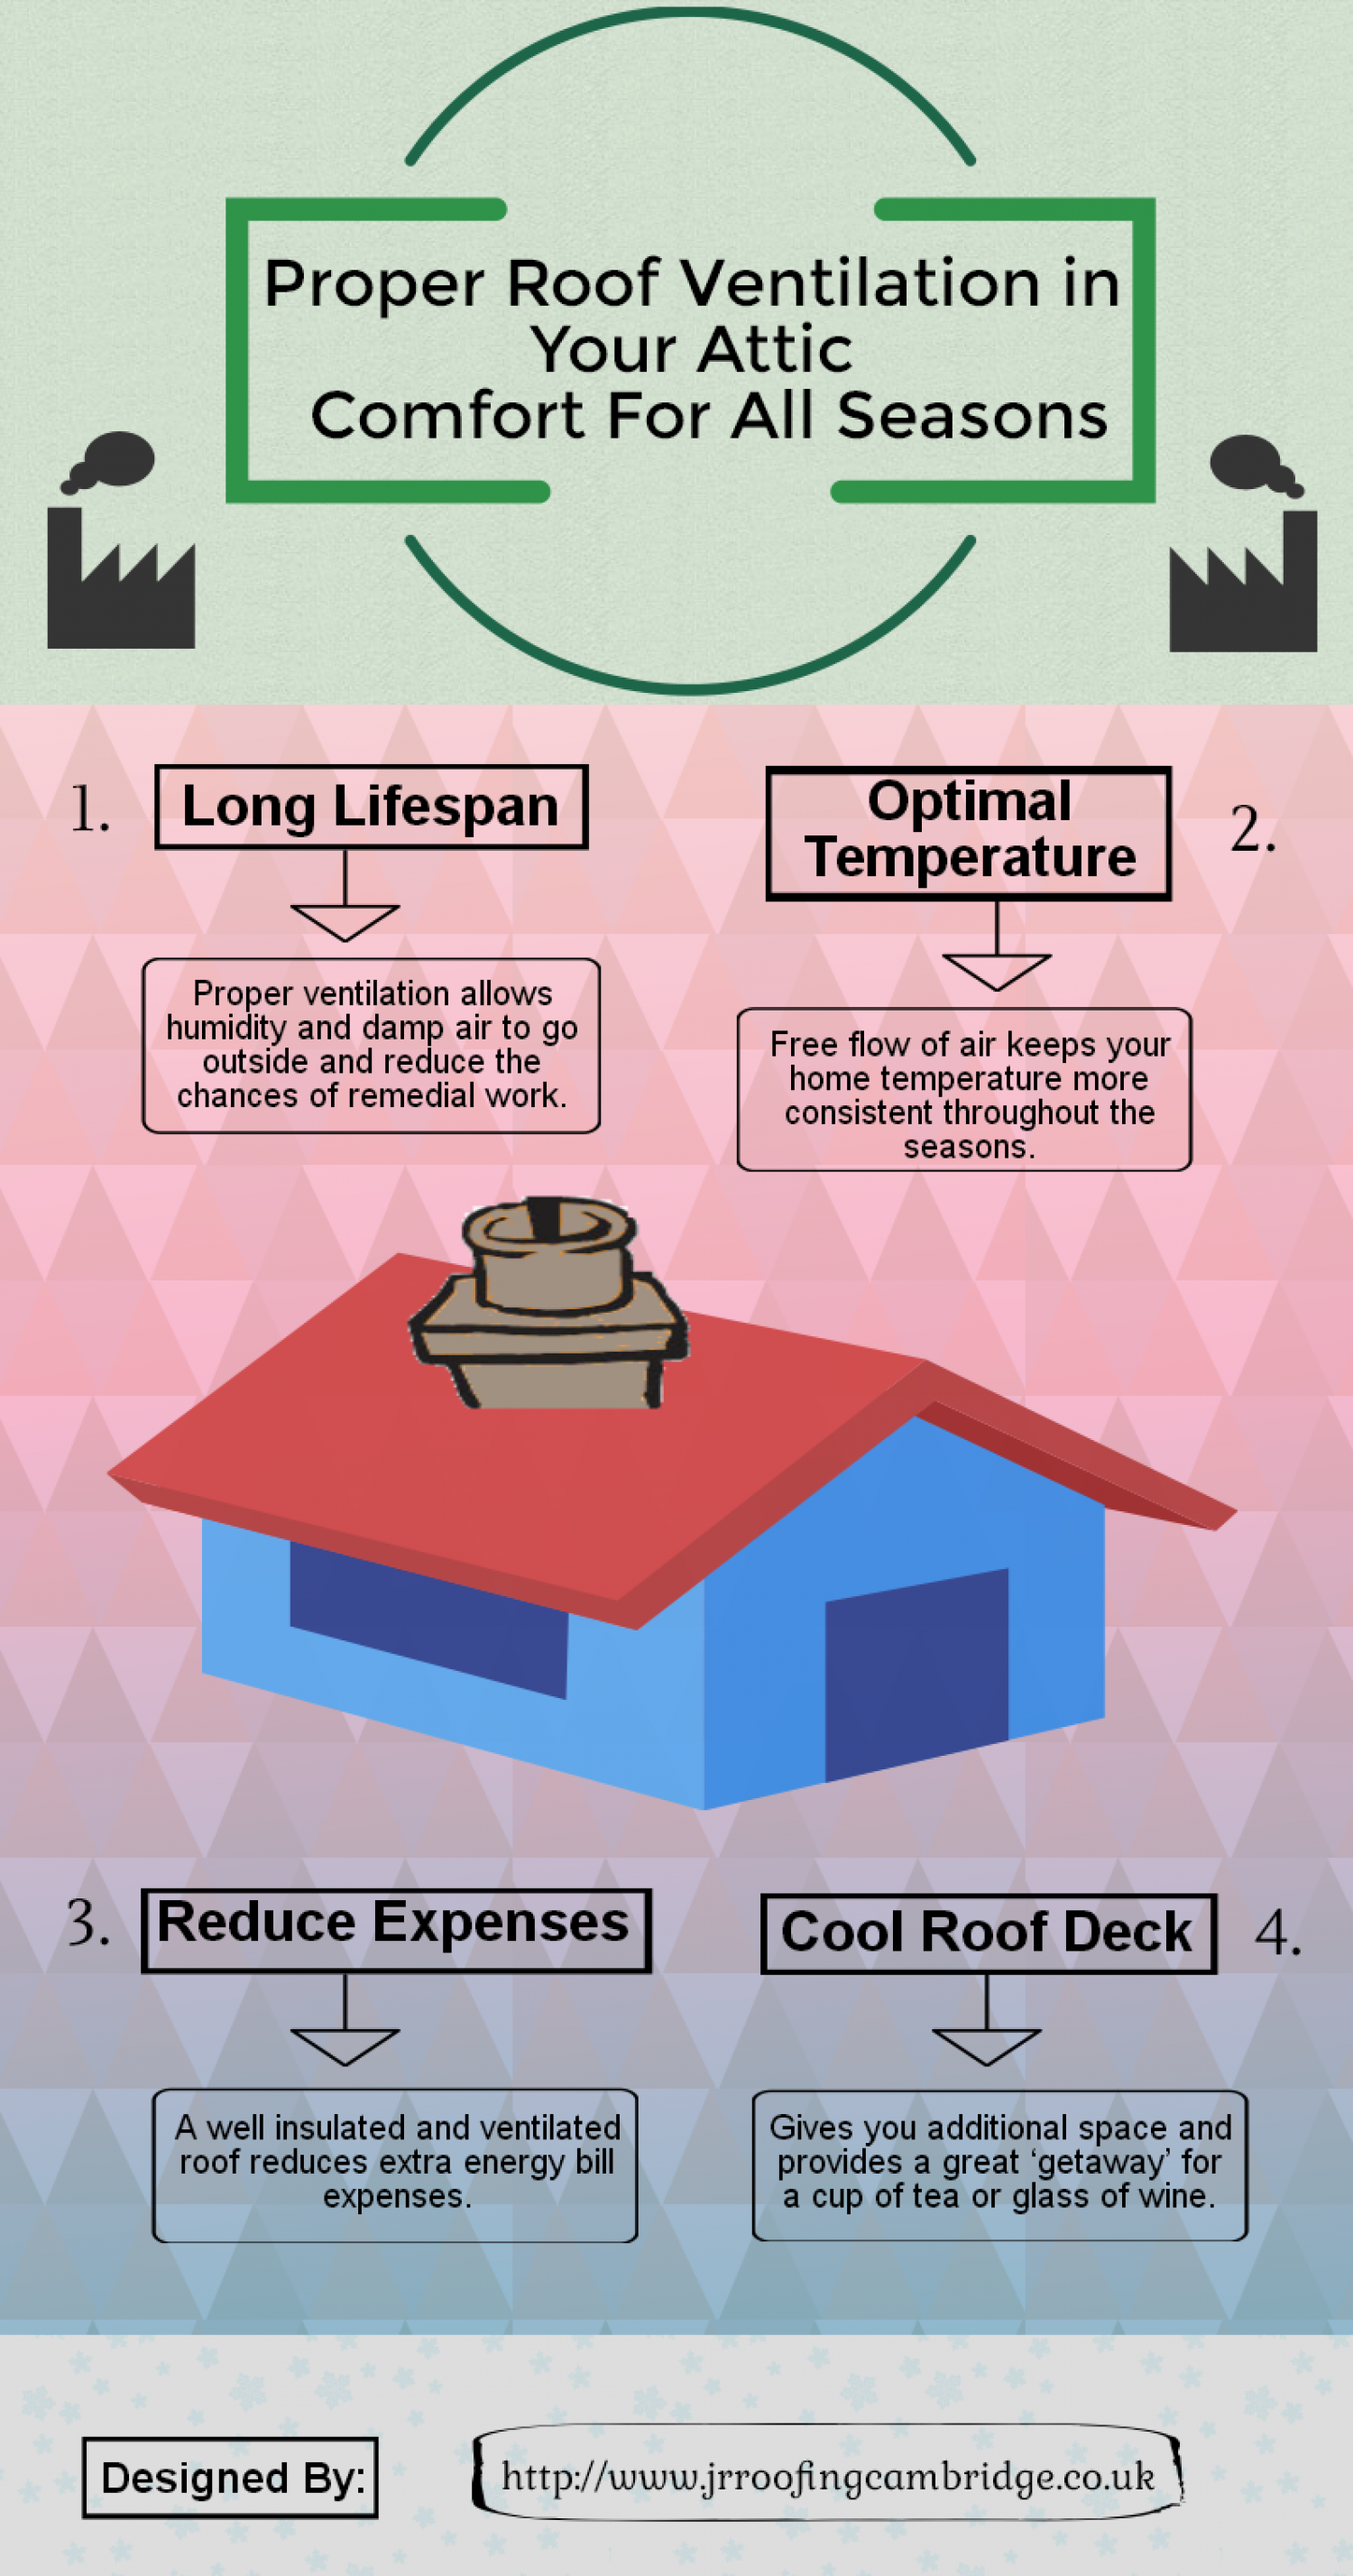 Proper Roof Ventilation : Proper roof ventilation in your attic comfort for all